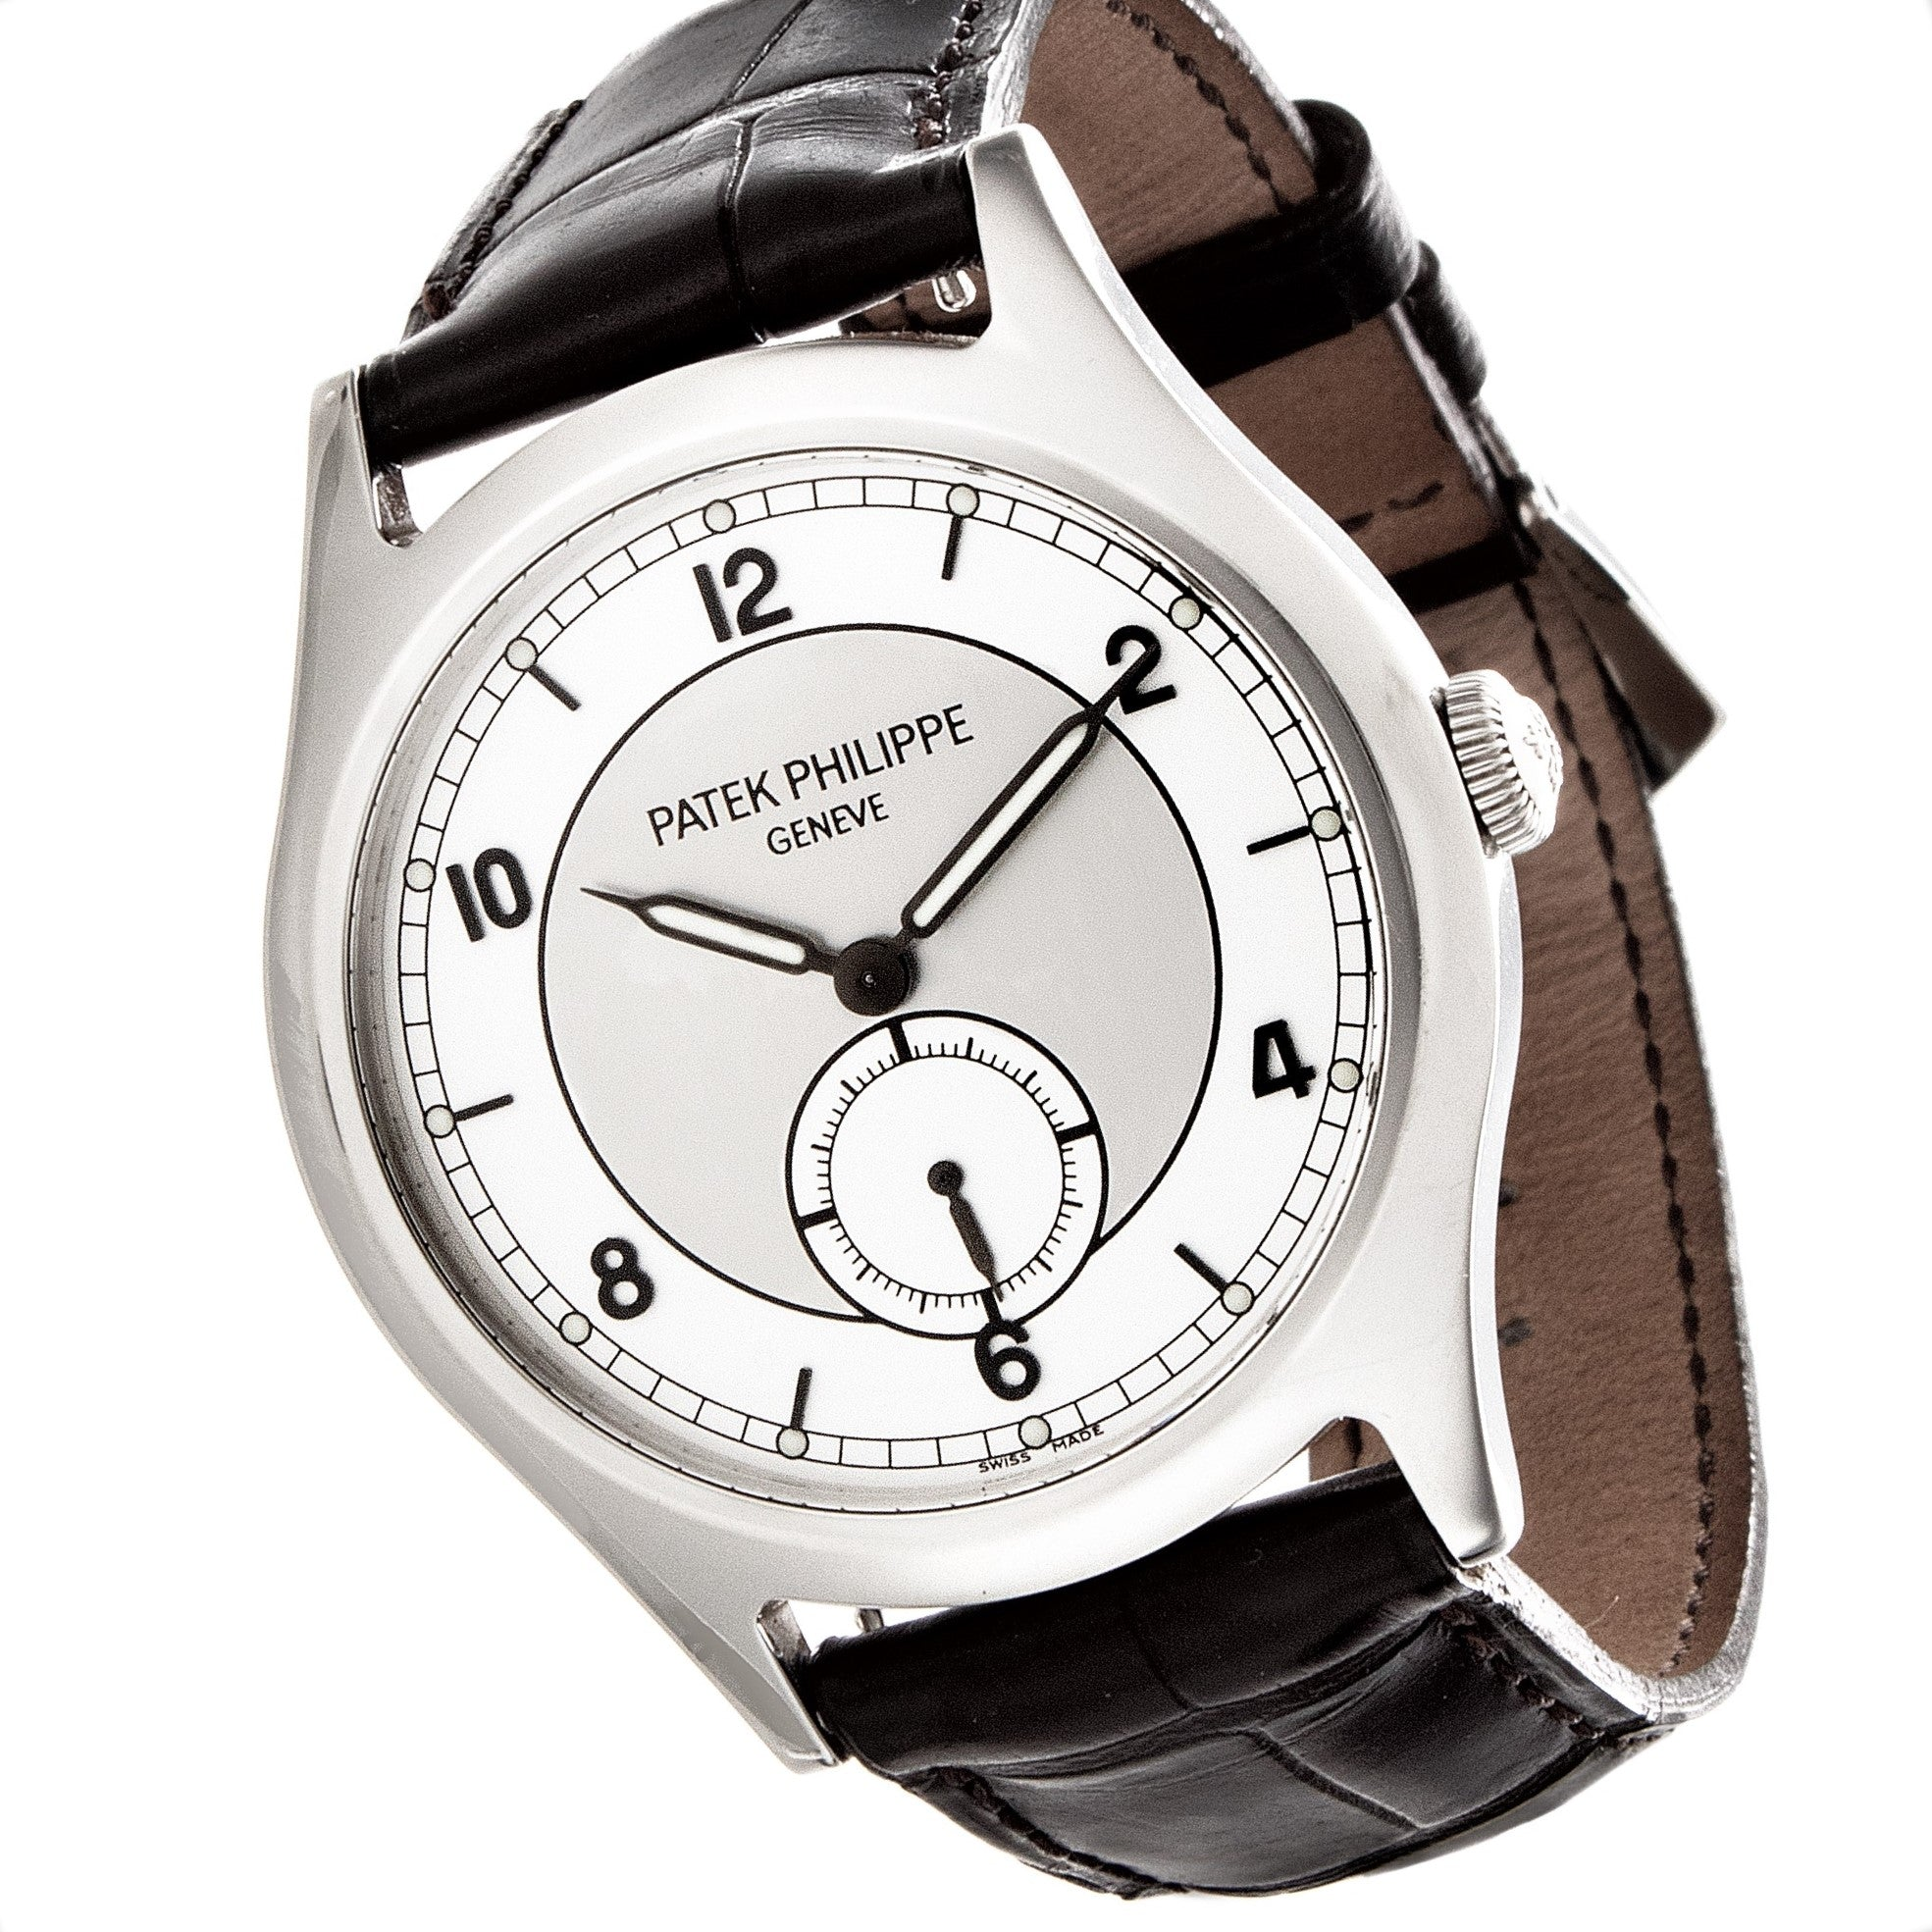 Patek Philippe 5565A Limited Edition Calatrava Watch